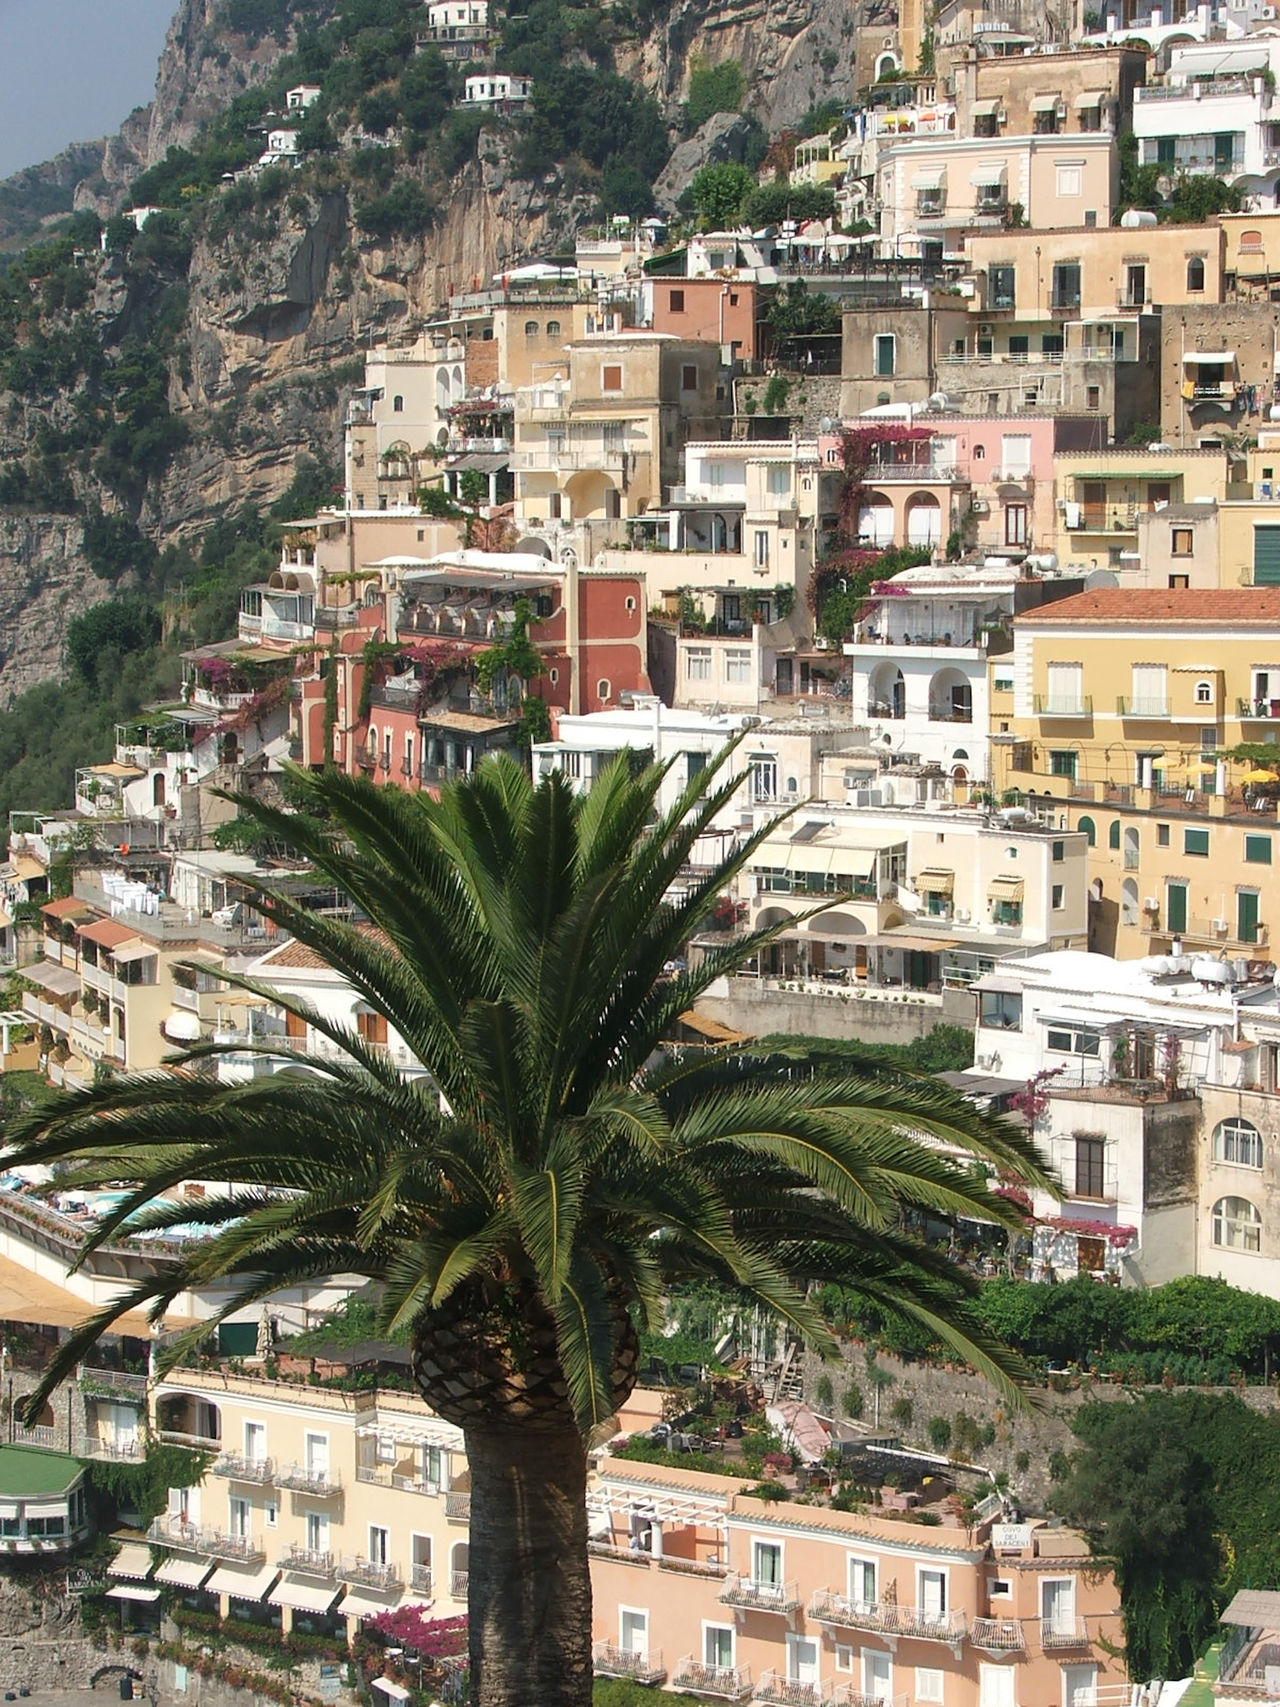 Positano Mountain Travel, Rocky, Bright, Sunshine, Nature Naples, Italy Island View  Island View  Green Yellow Boat Travel Destinations Coast Water Beauty In Nature Cultures